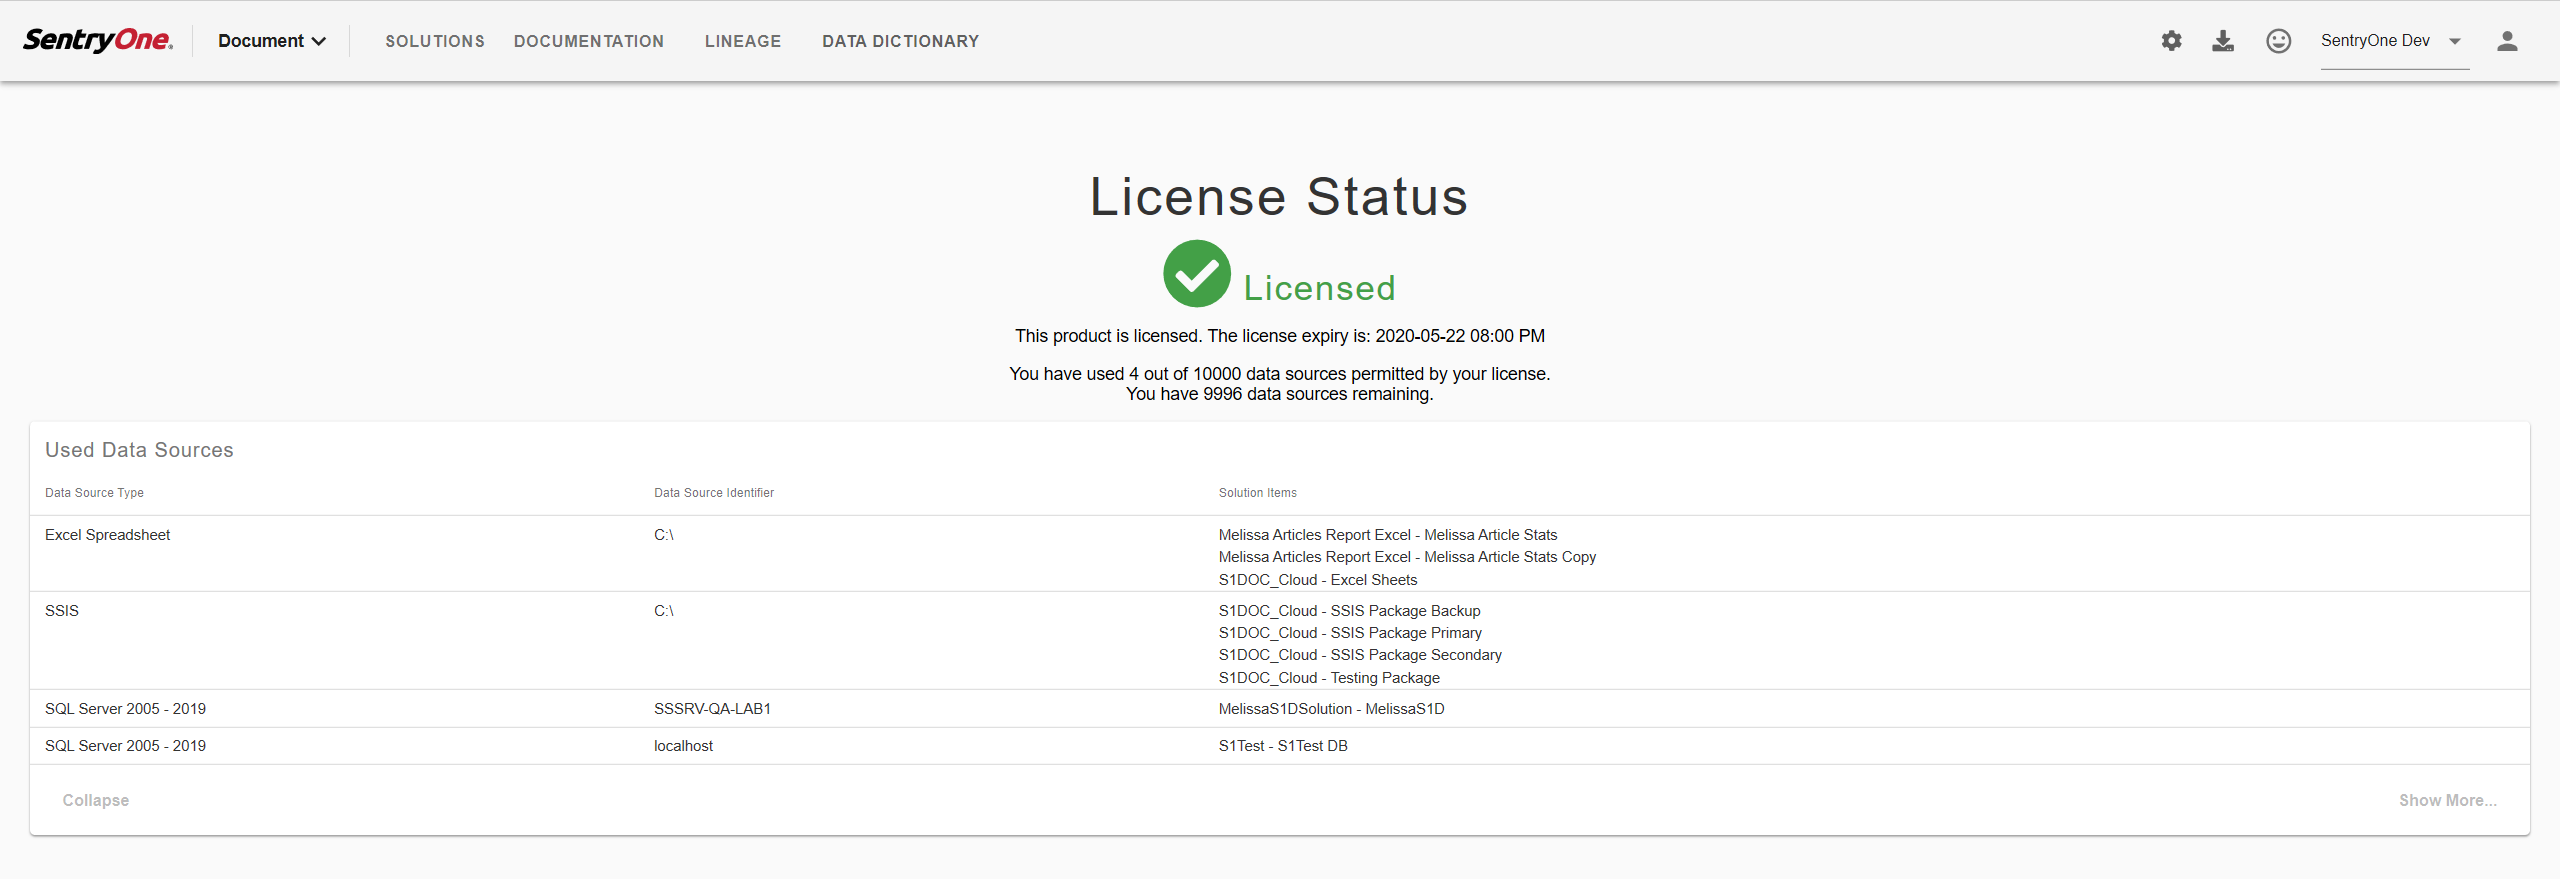 SentryOne Document License Status page